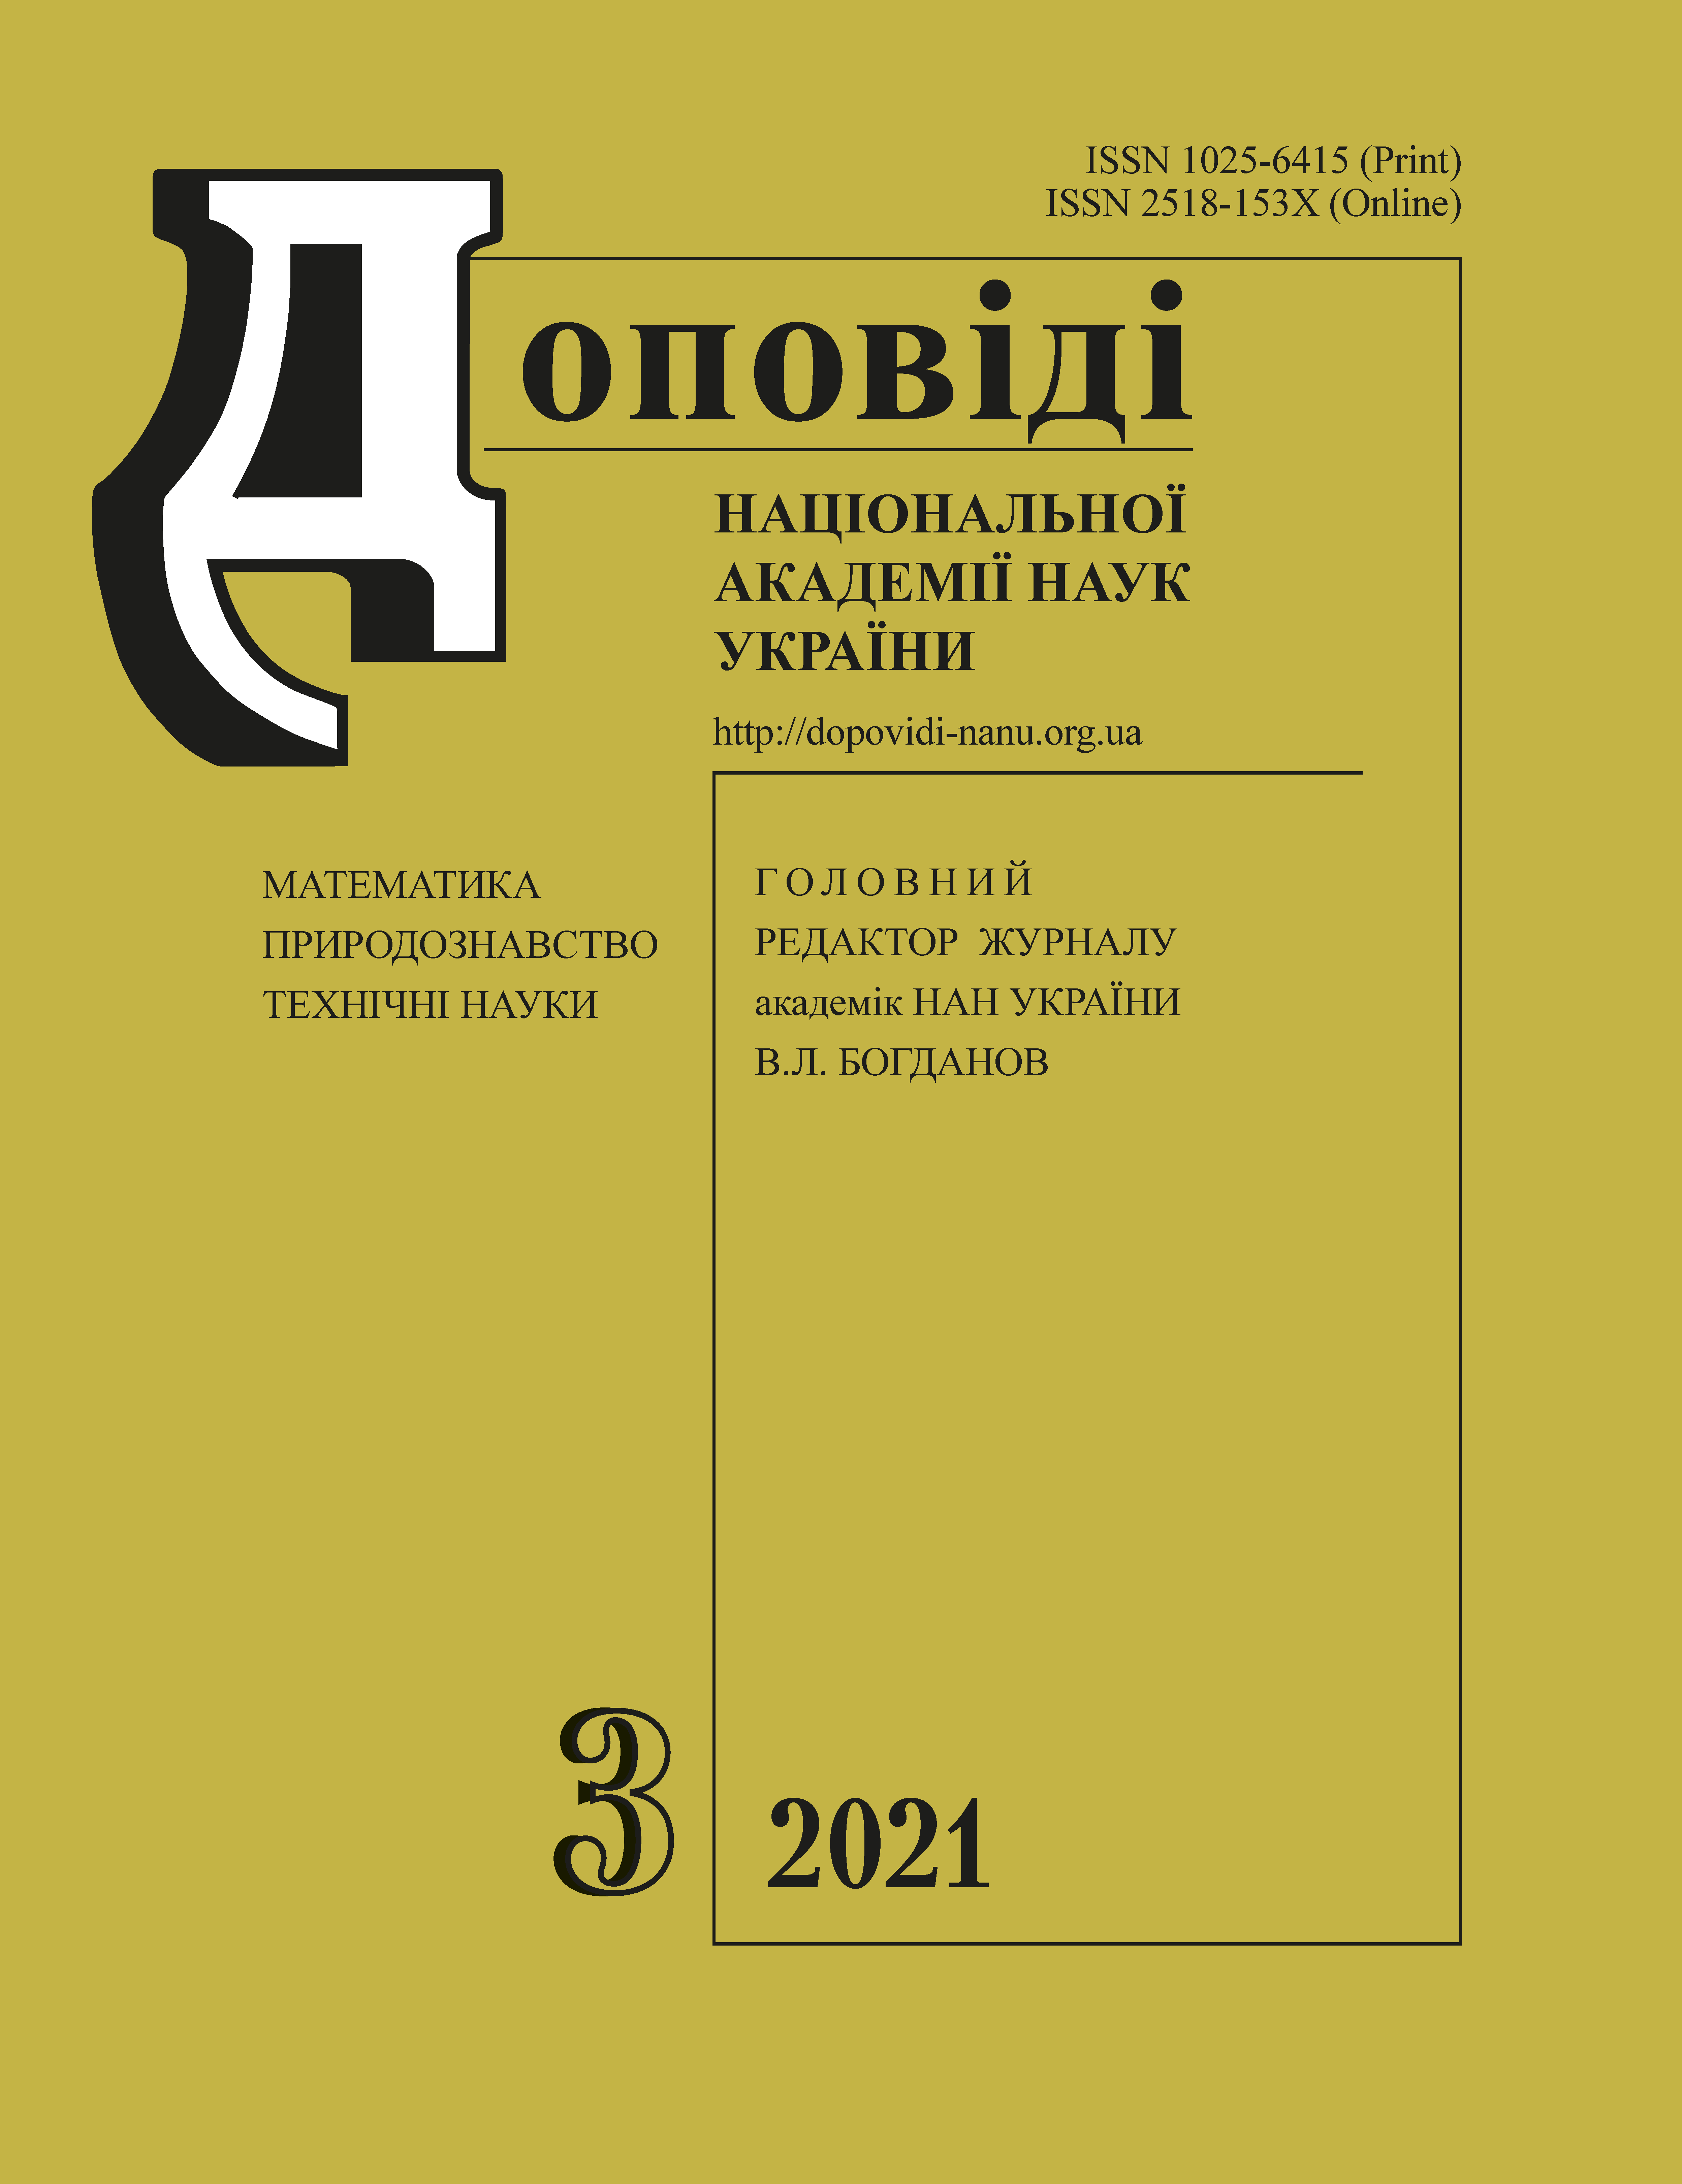 View No. 3 (2021): Reports of the National Academy of Sciences of Ukraine